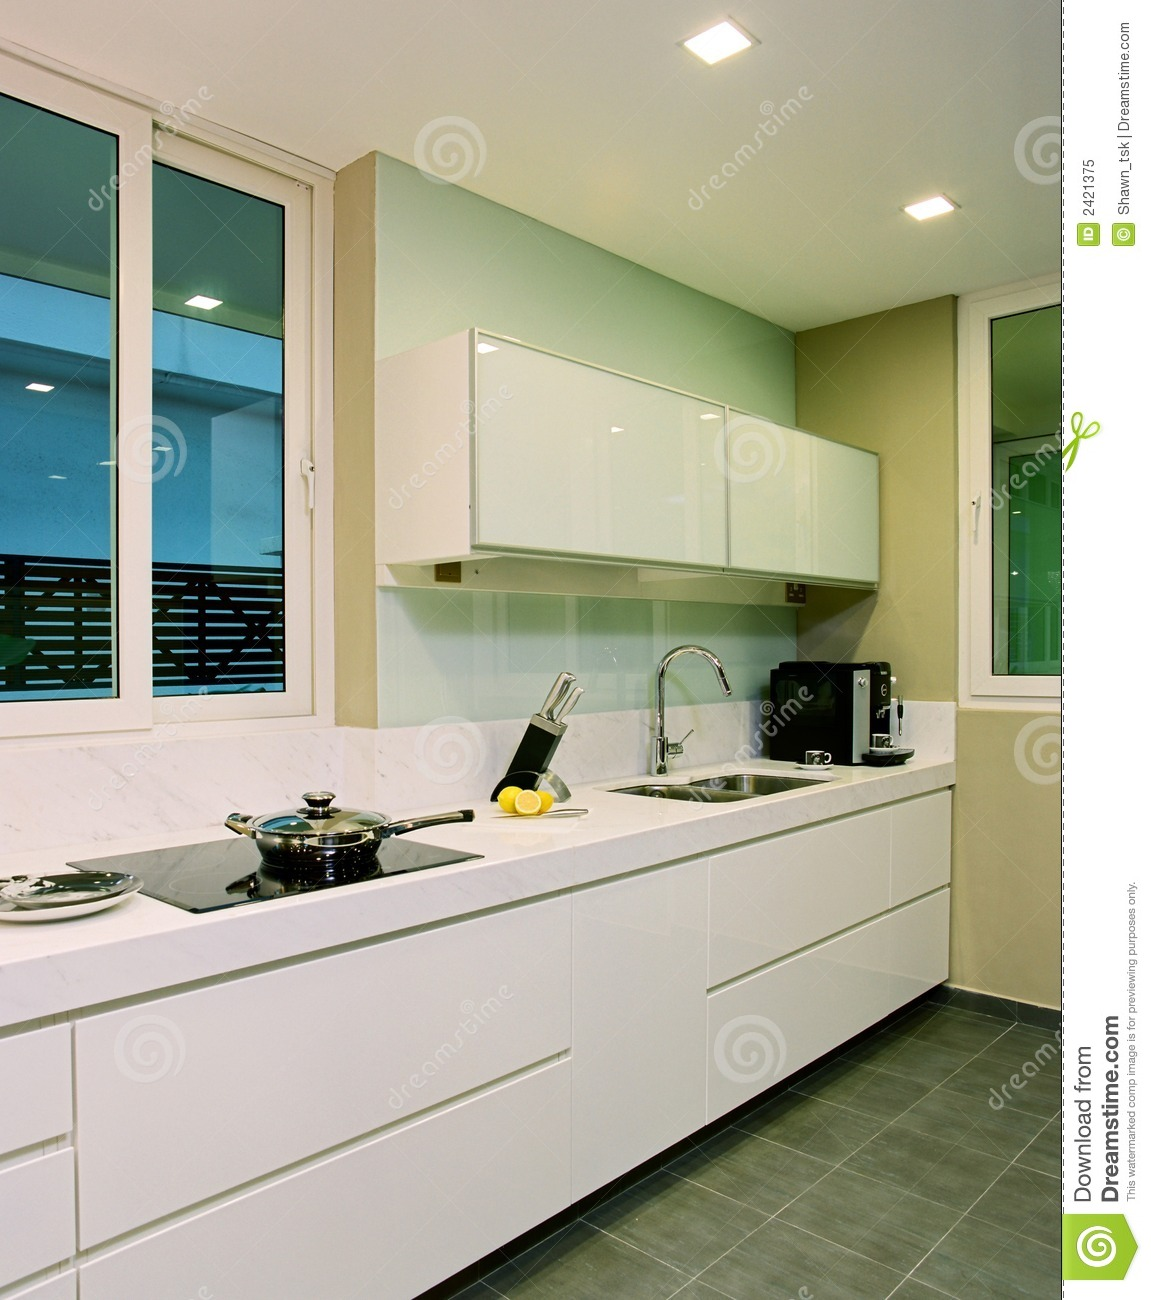 Interior Design Kitchen Royalty Free Stock Photo Image 2421375